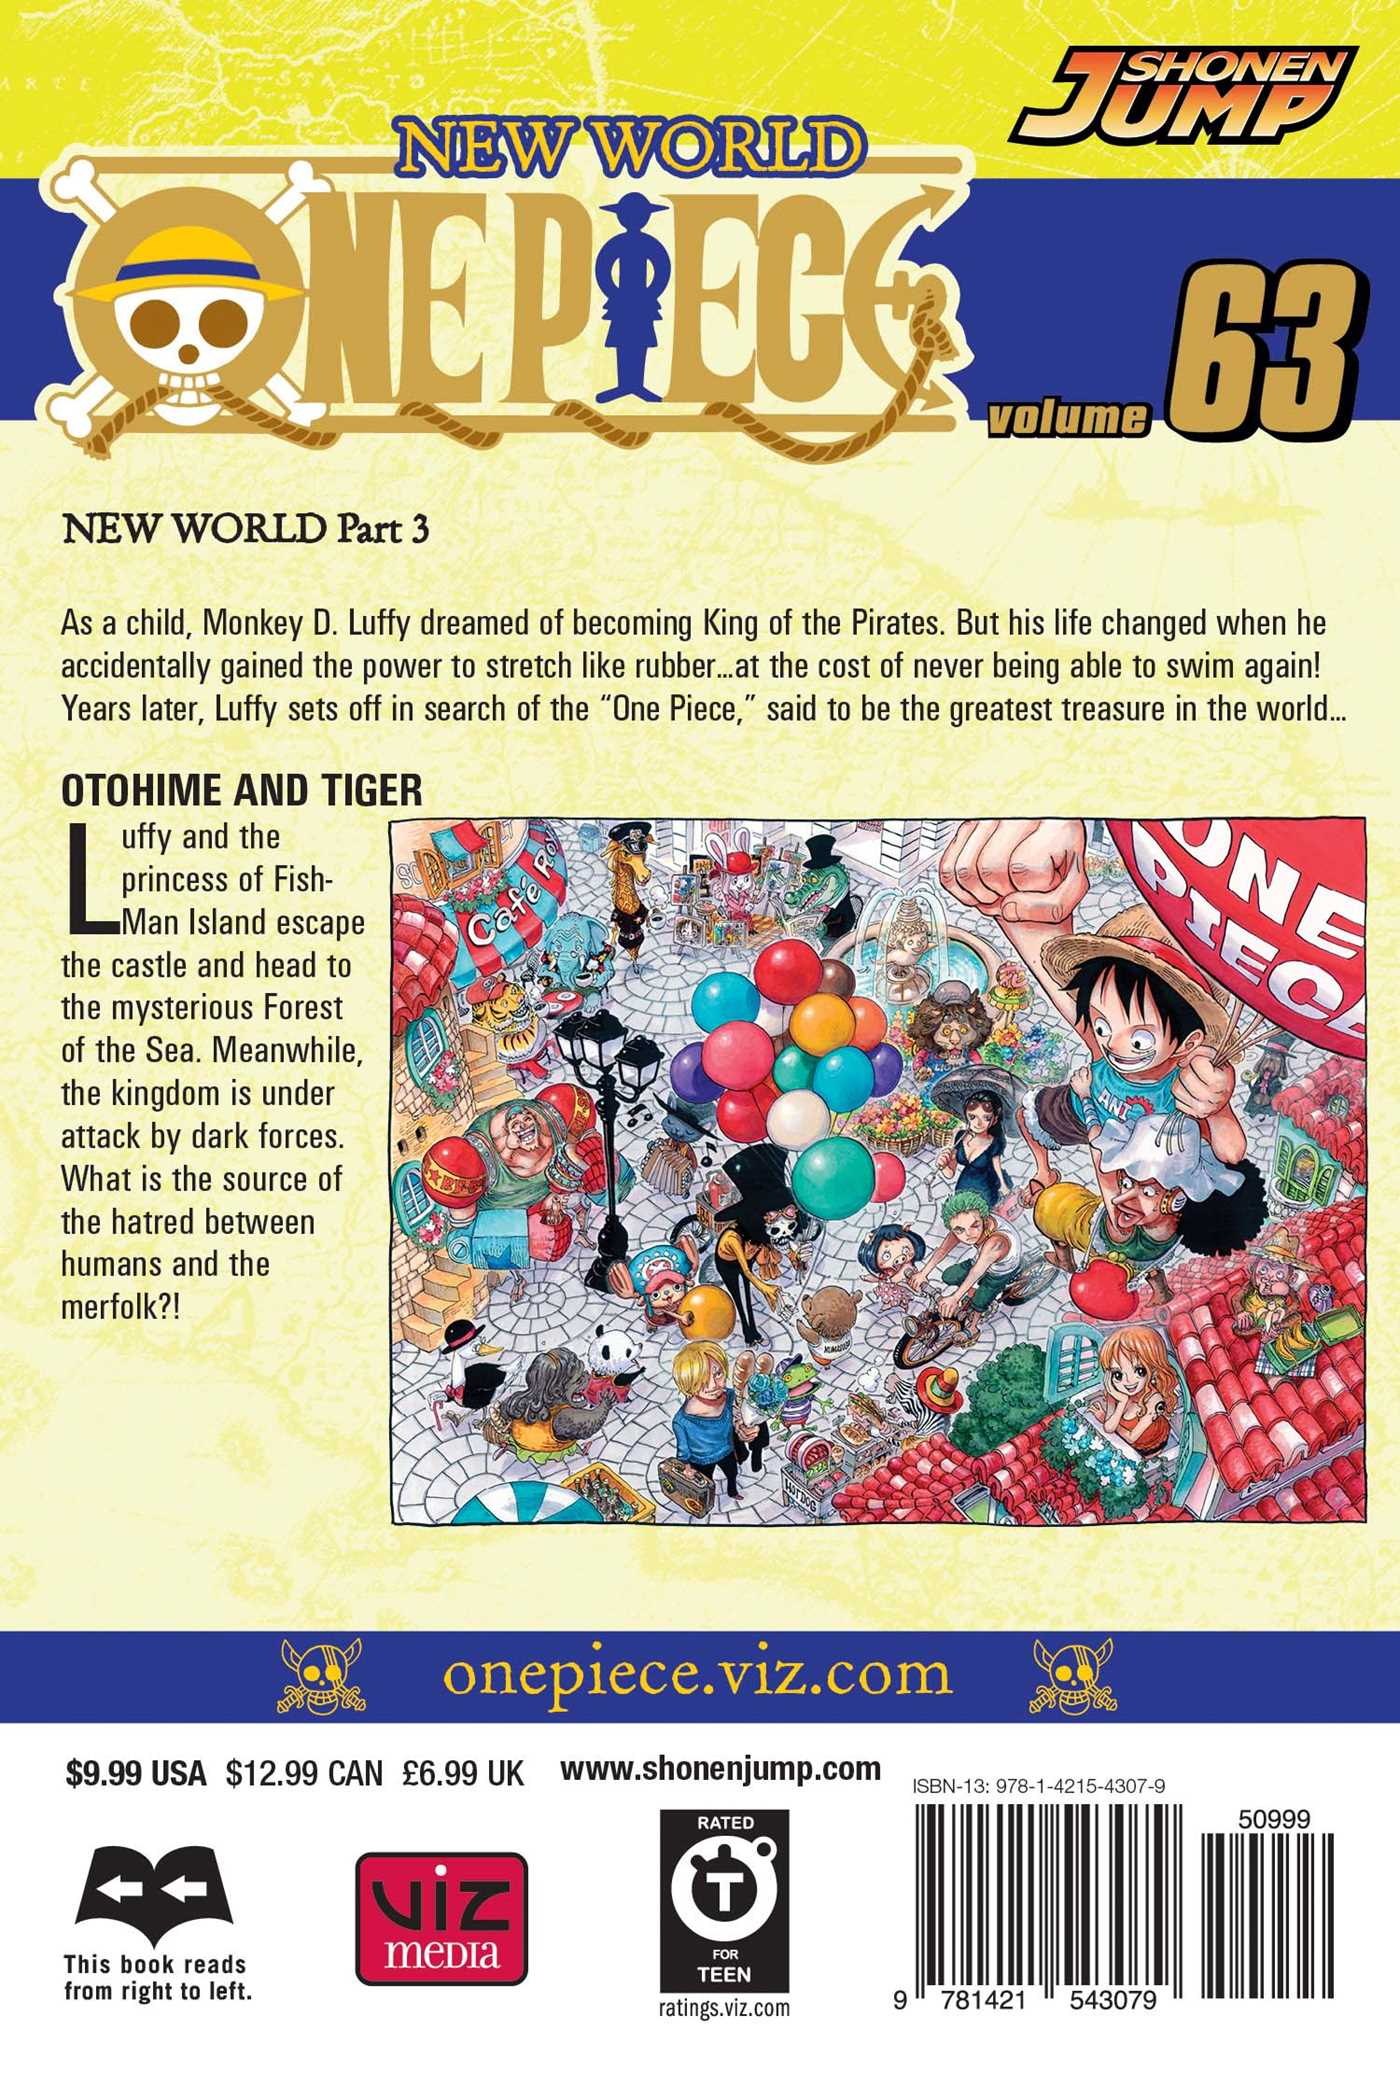 One piece vol 63 9781421543079 hr back